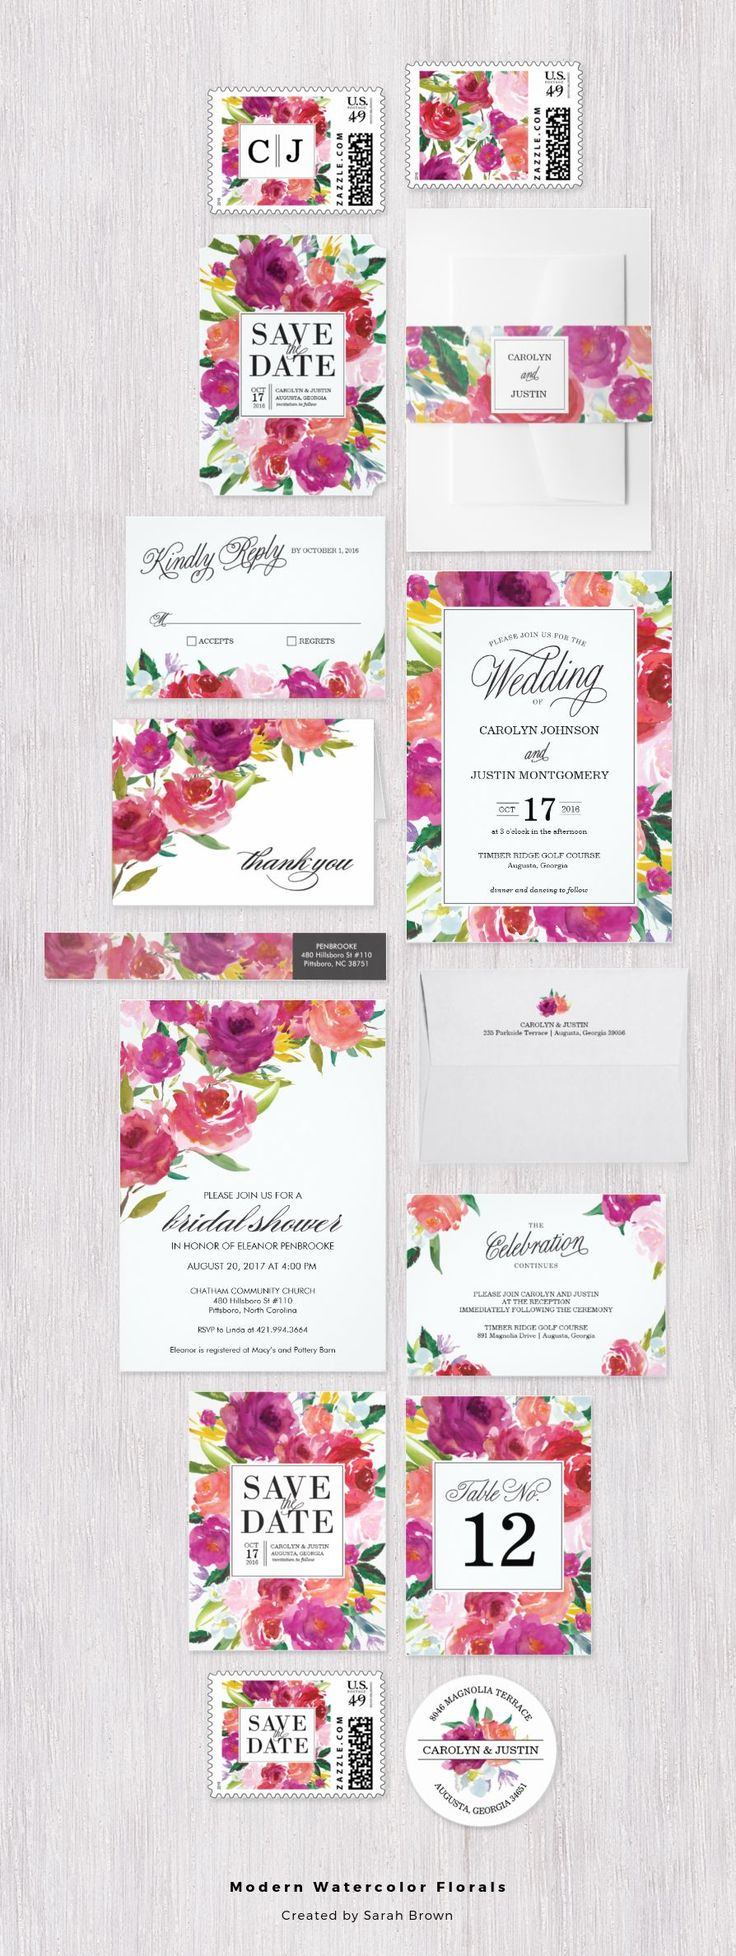 civil wedding invitation card%0A Modern watercolor flowers in vivid pinks and raspberry colors   floral wedding  invitation set